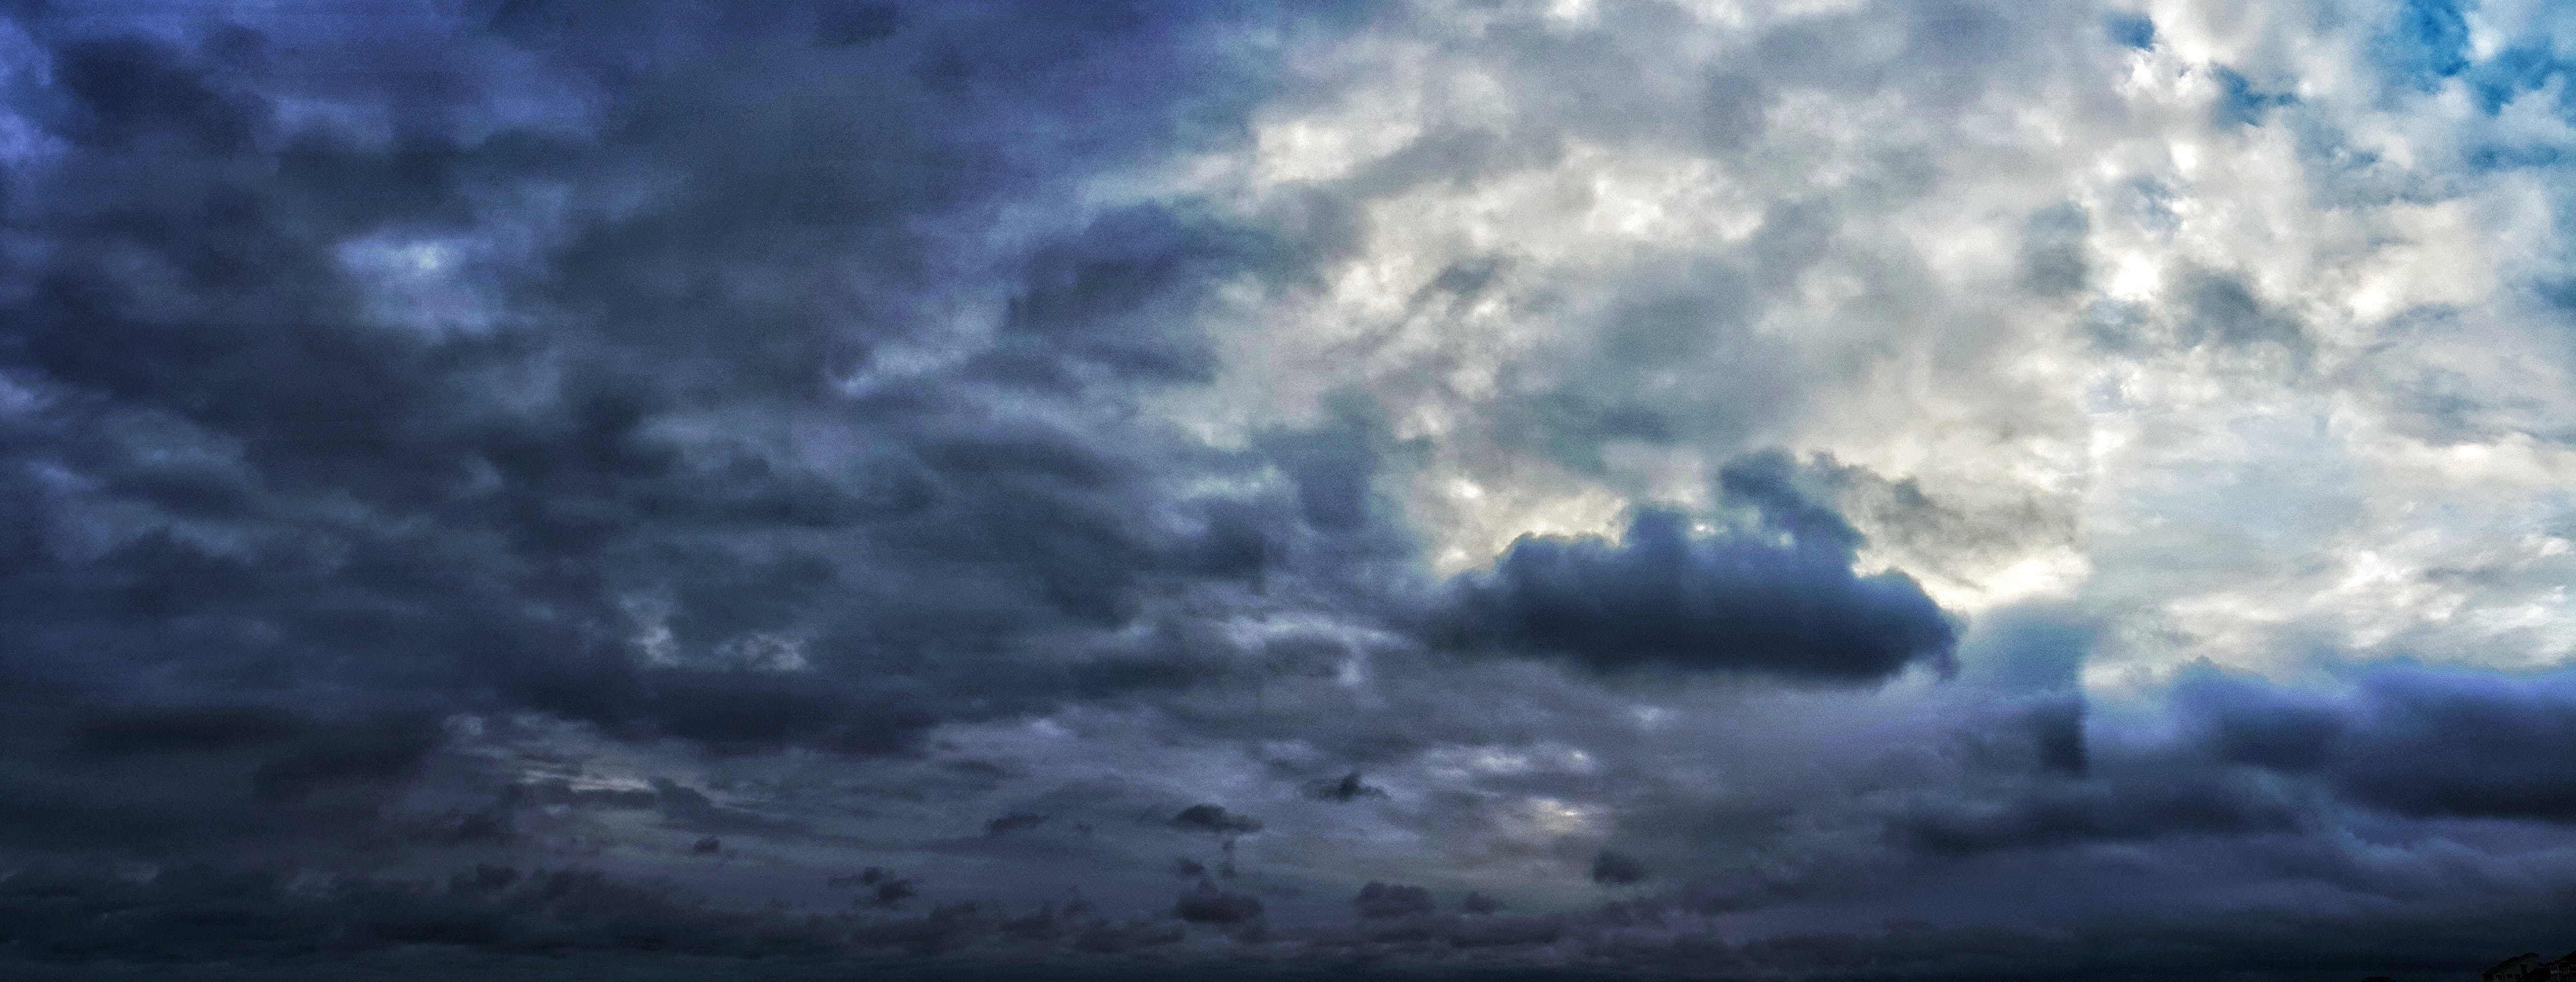 Free stock photo of blue, clouds, rain, storm